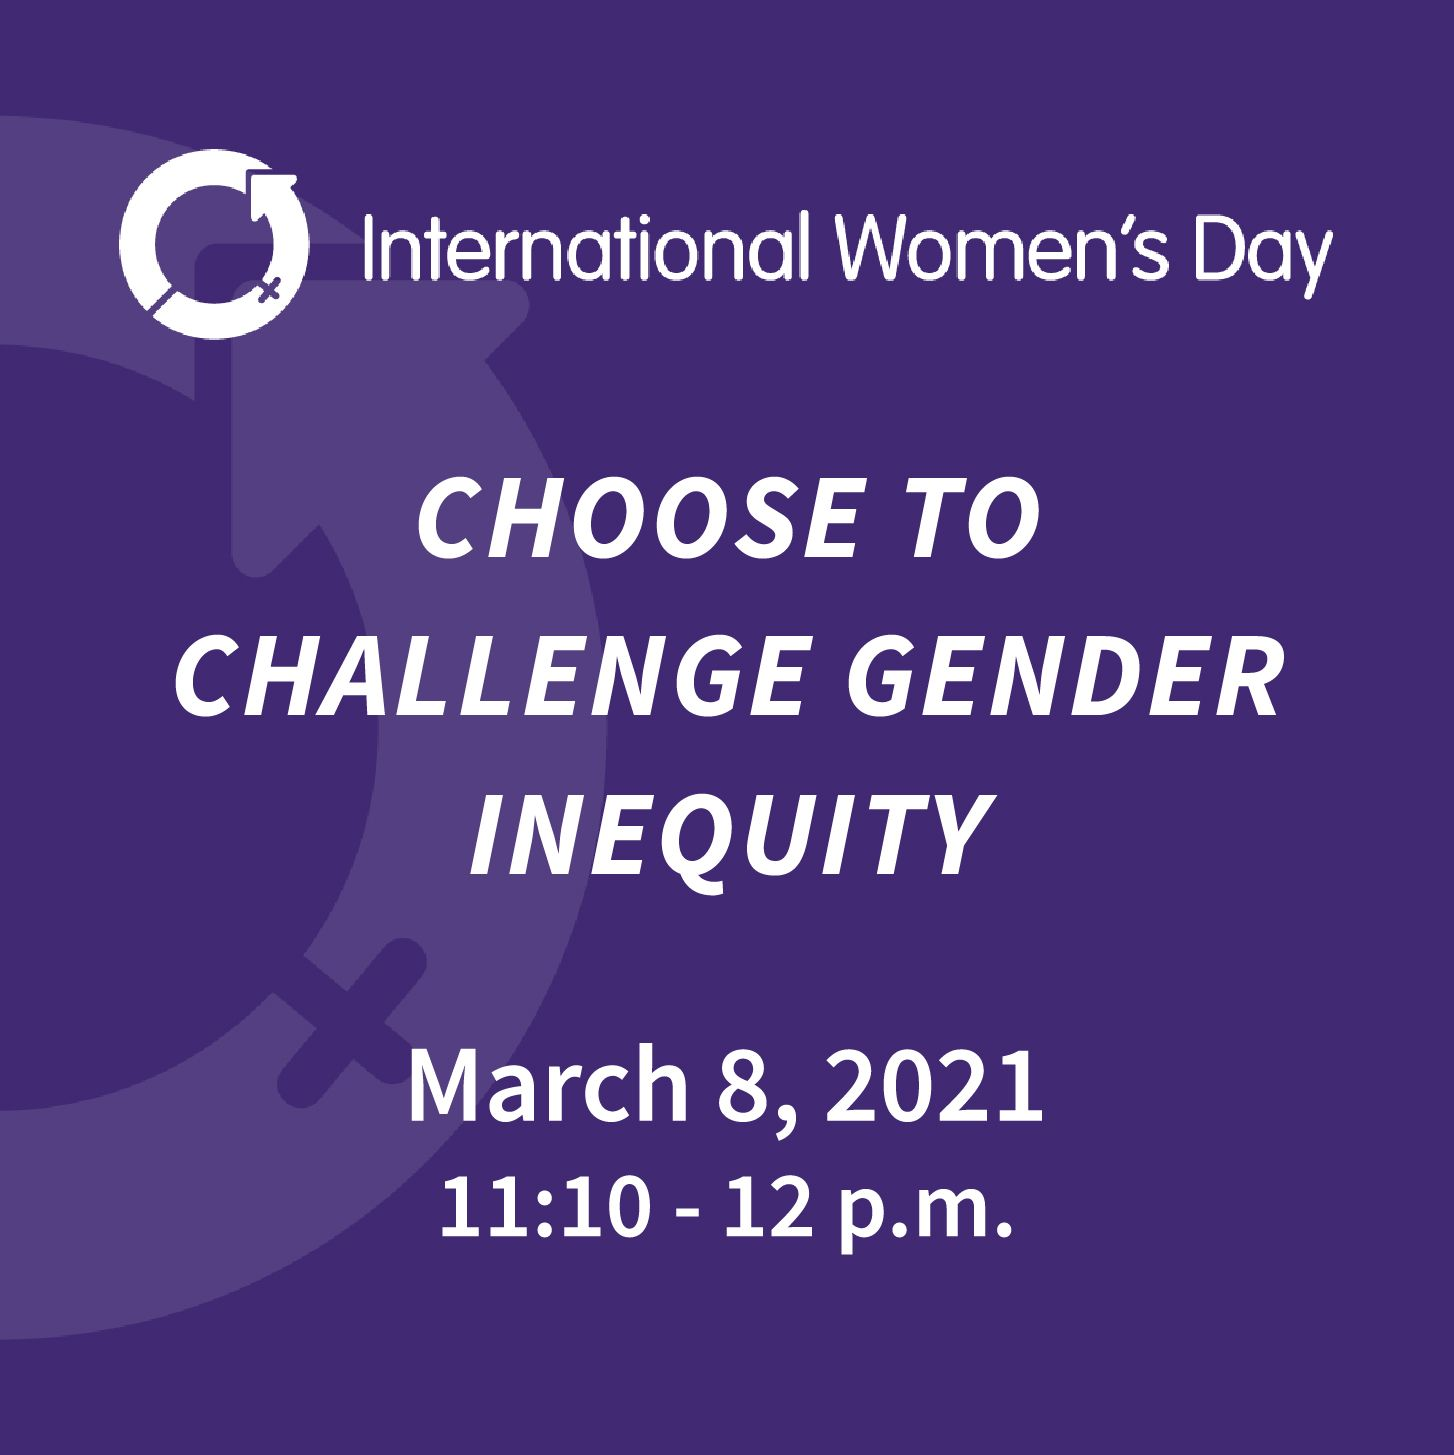 International Women's Day Activities Include Virtual Panel on March 8